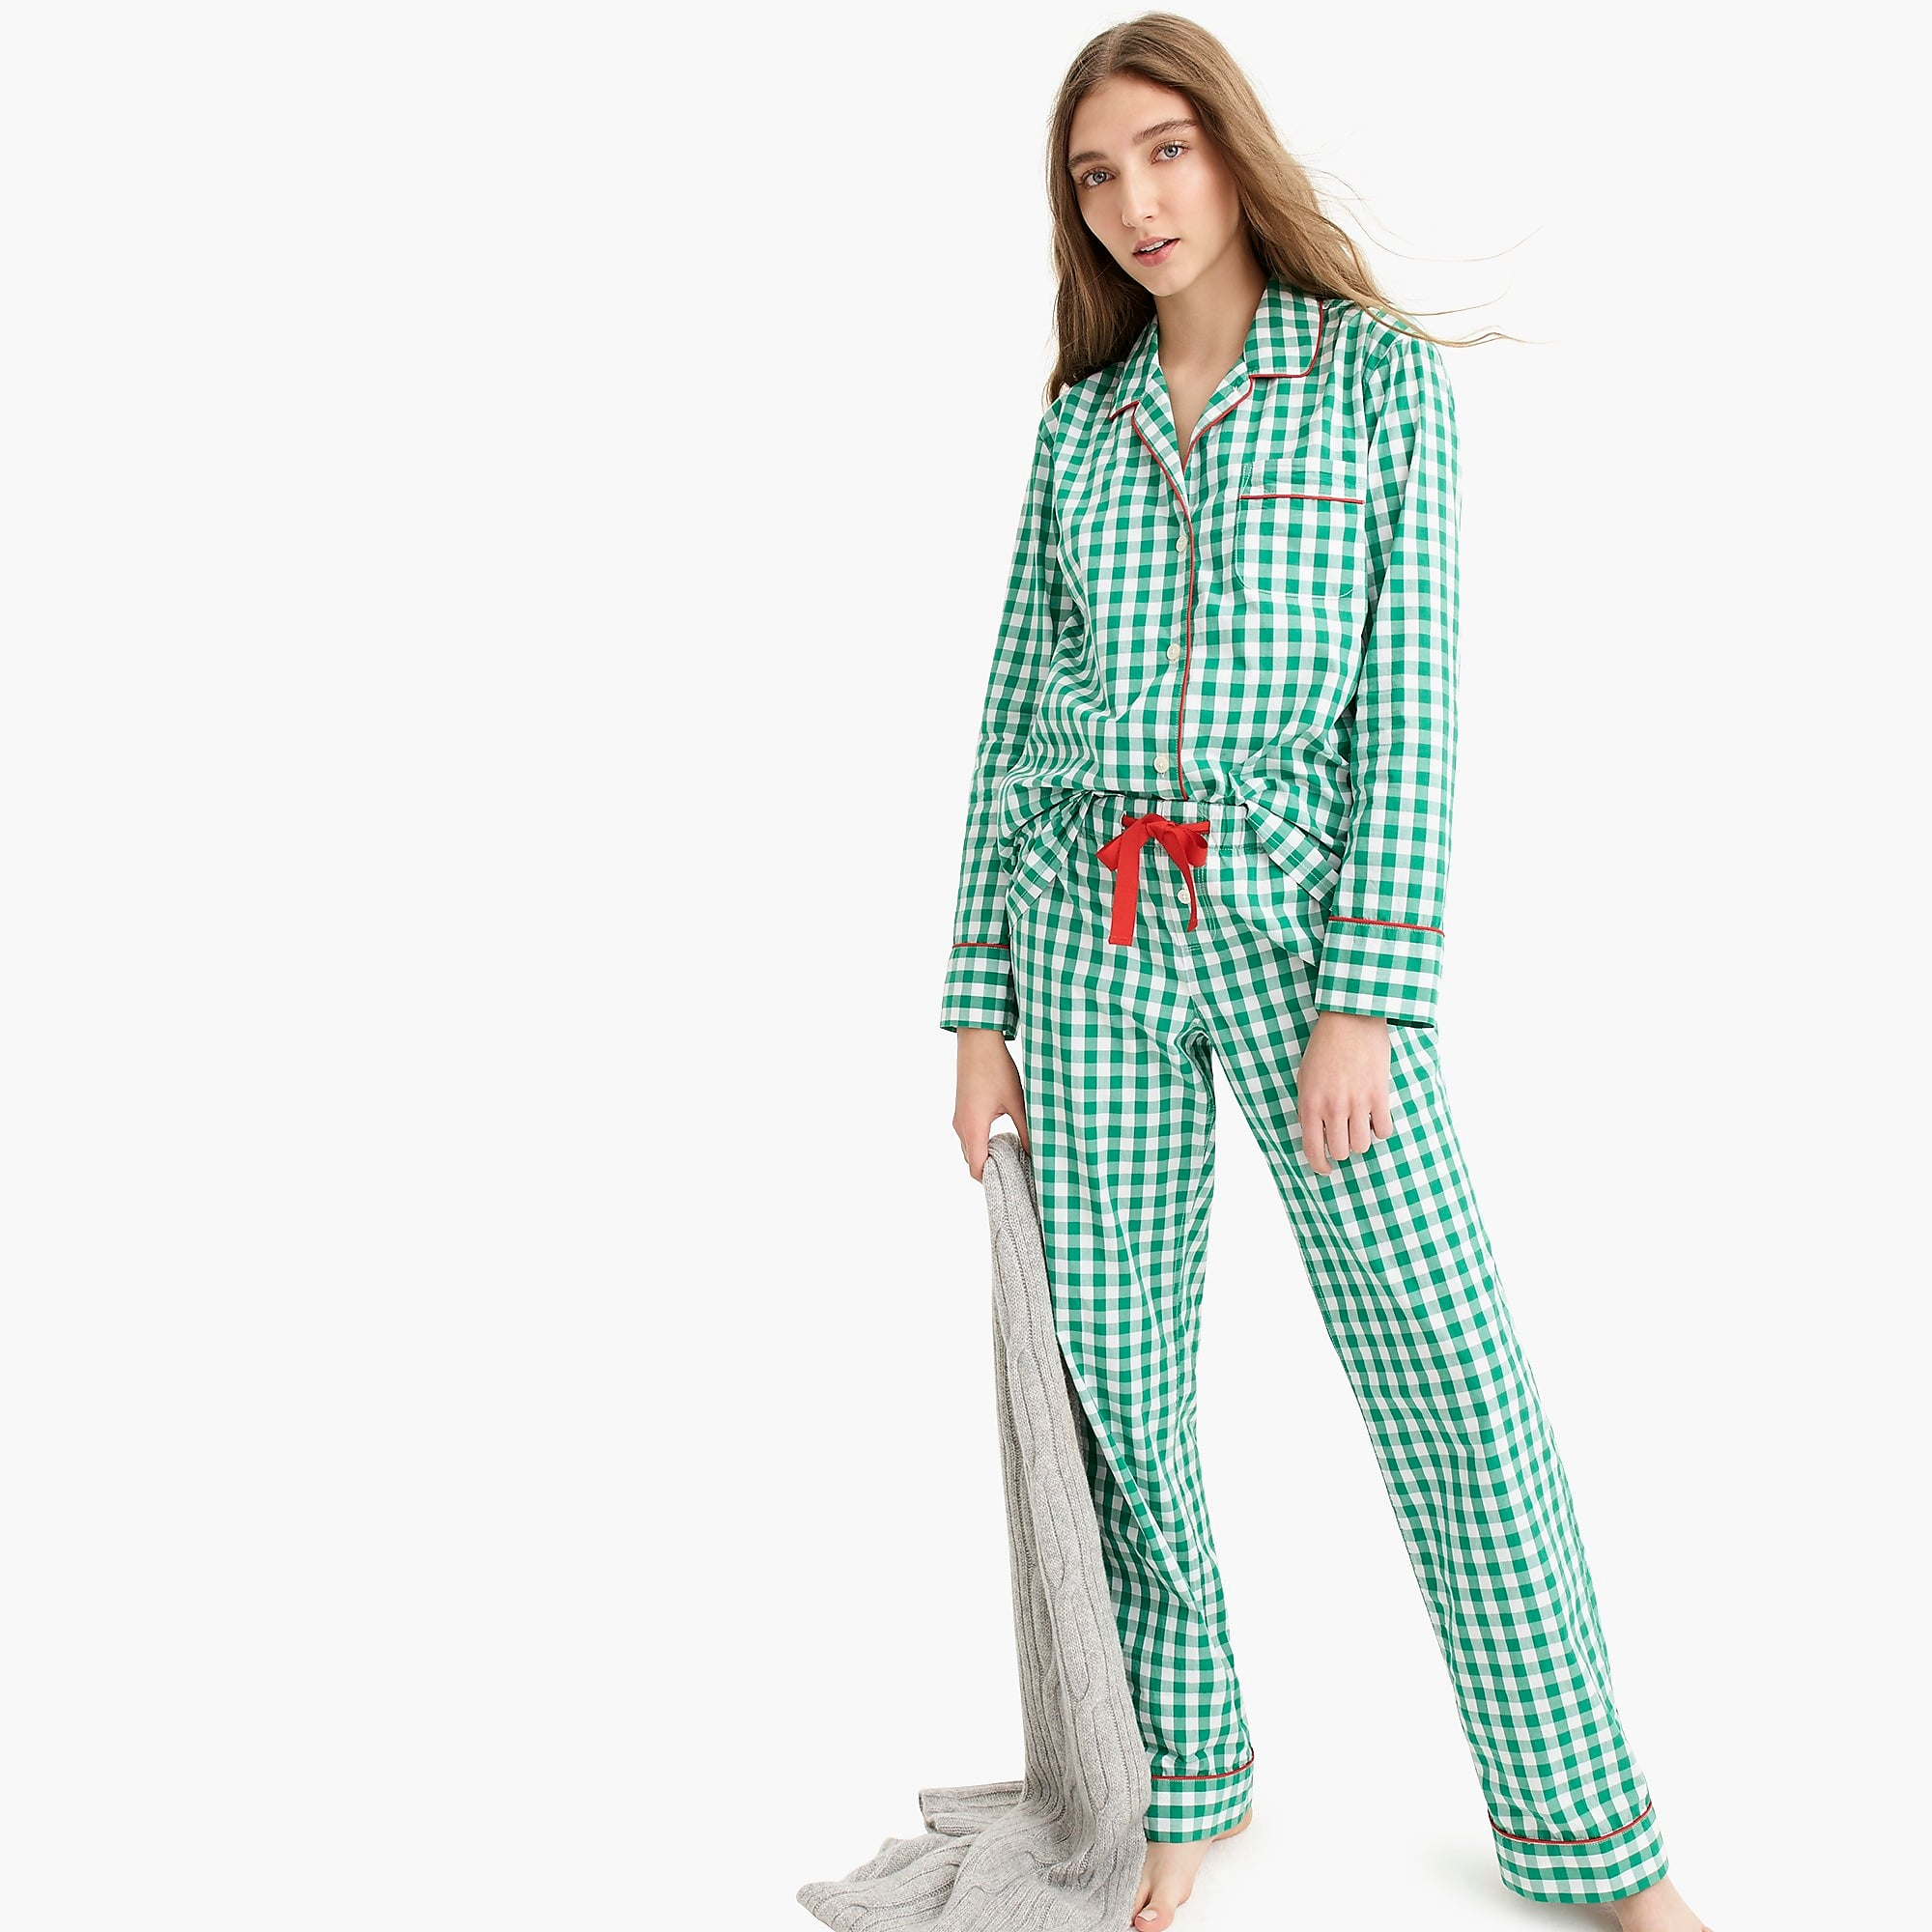 9d545d30a8 Holiday Pajamas for the Entire Family - Katie Considers